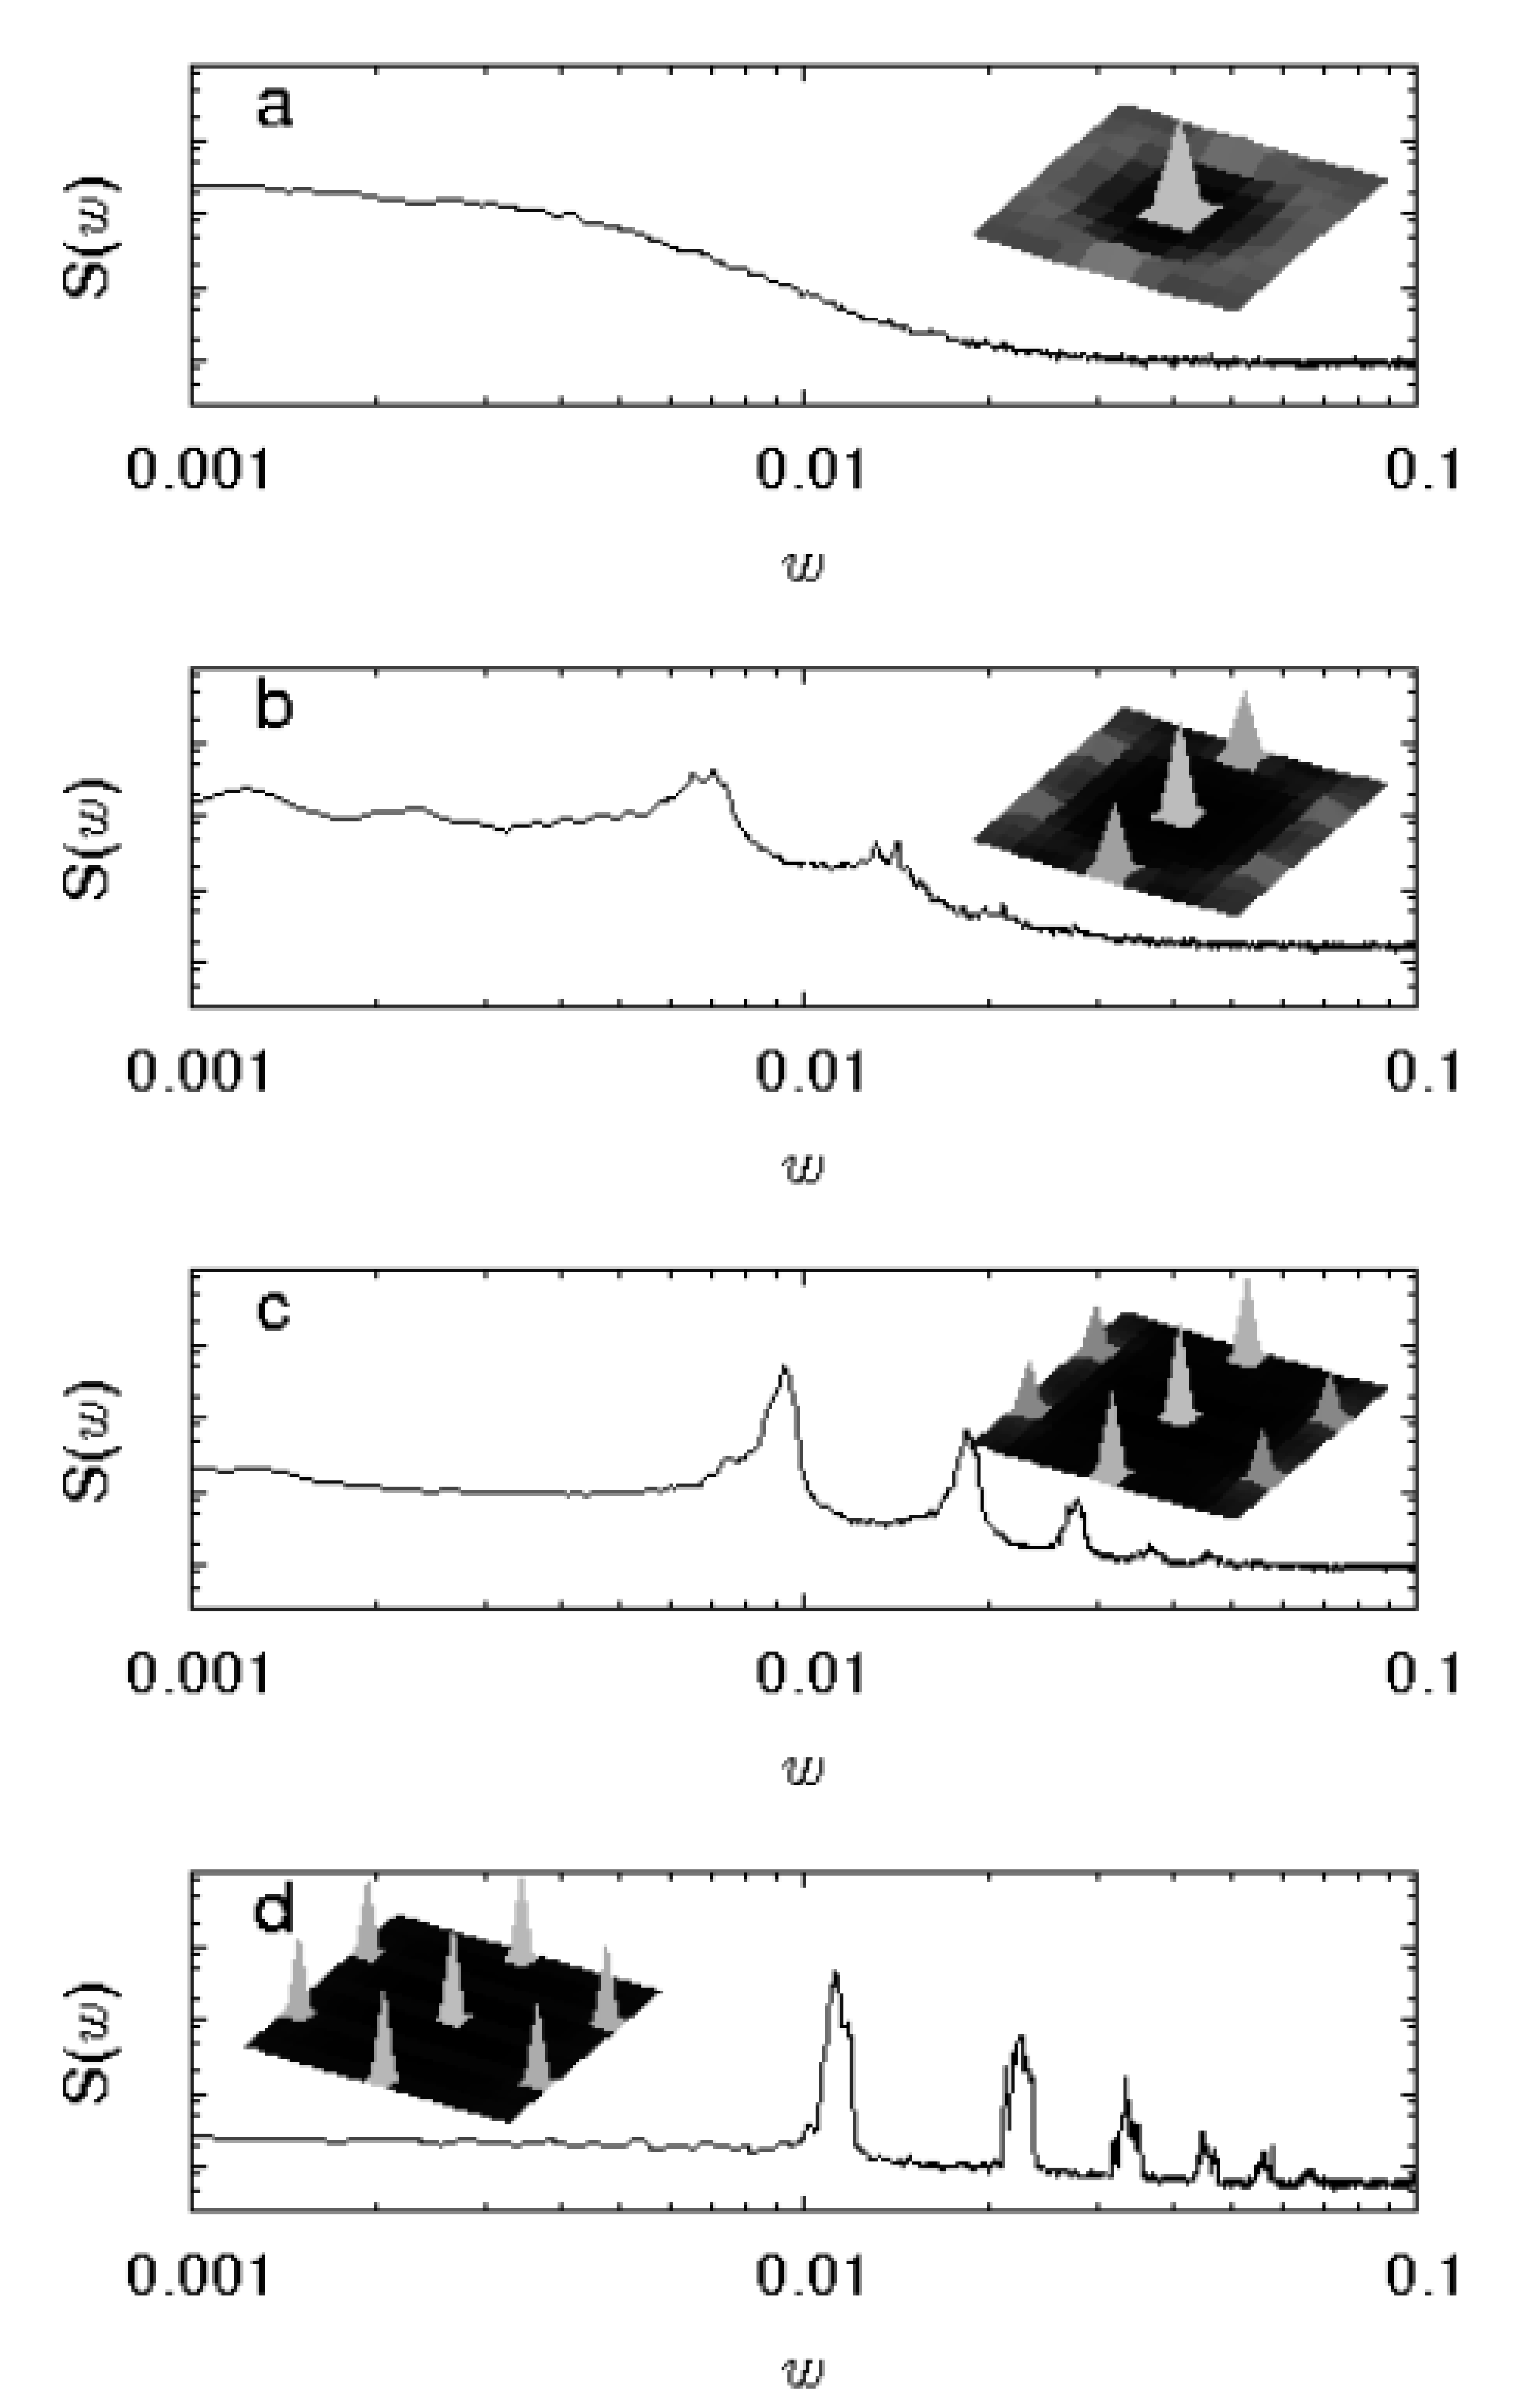 5b858f06b40e Figure 23  The vortex velocity power spectra S(ω) from simulations of a 3D  elastic line vortex model in the moving phase for increasing vortex  density